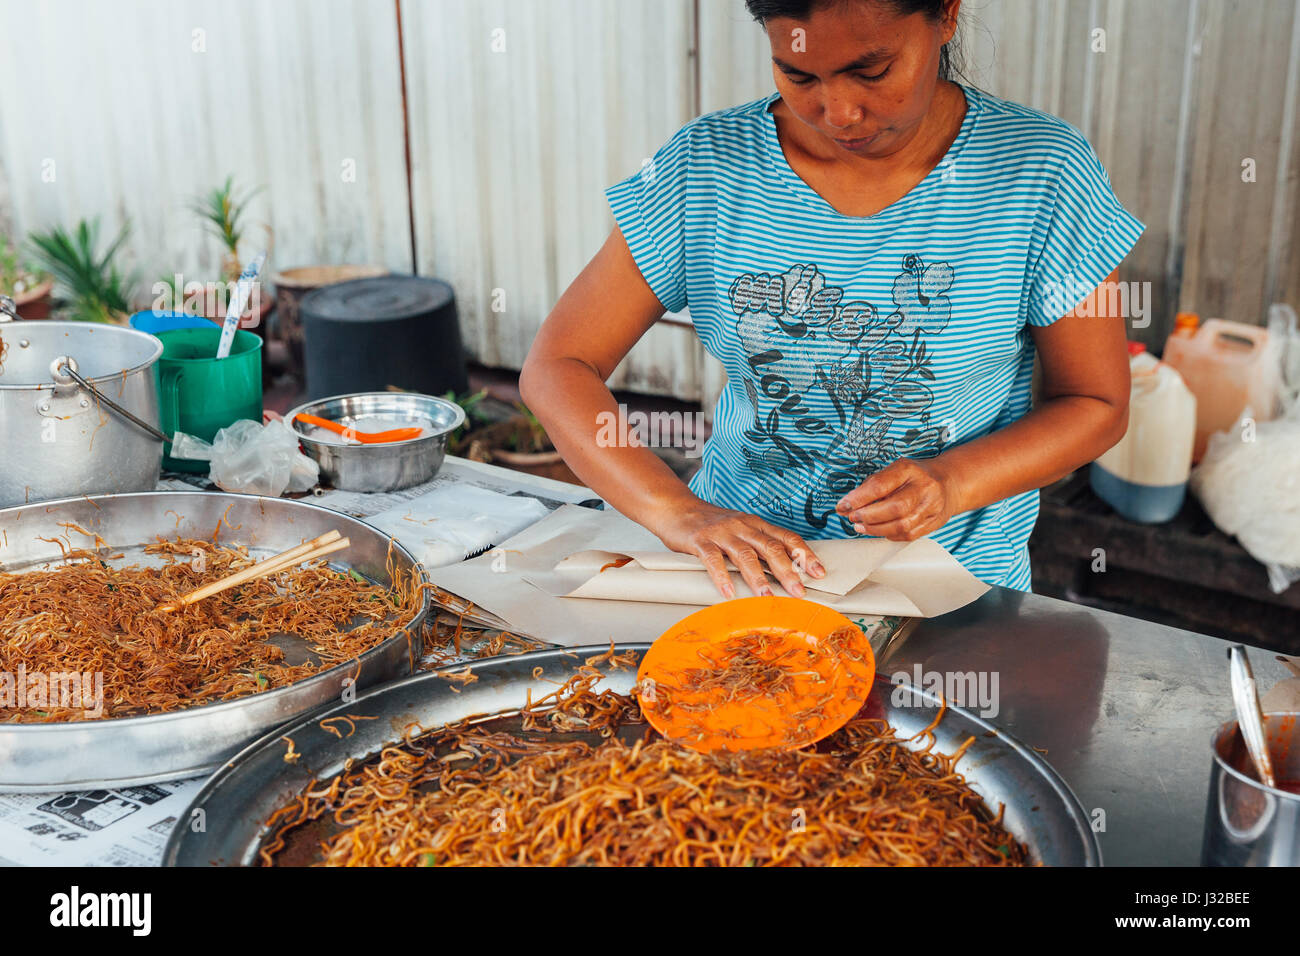 GEORGE TOWN, MALAYSIA - MARCH 23: Woman packing stir-fried noodles into the paper at Kimberly Street Food Night - Stock Image